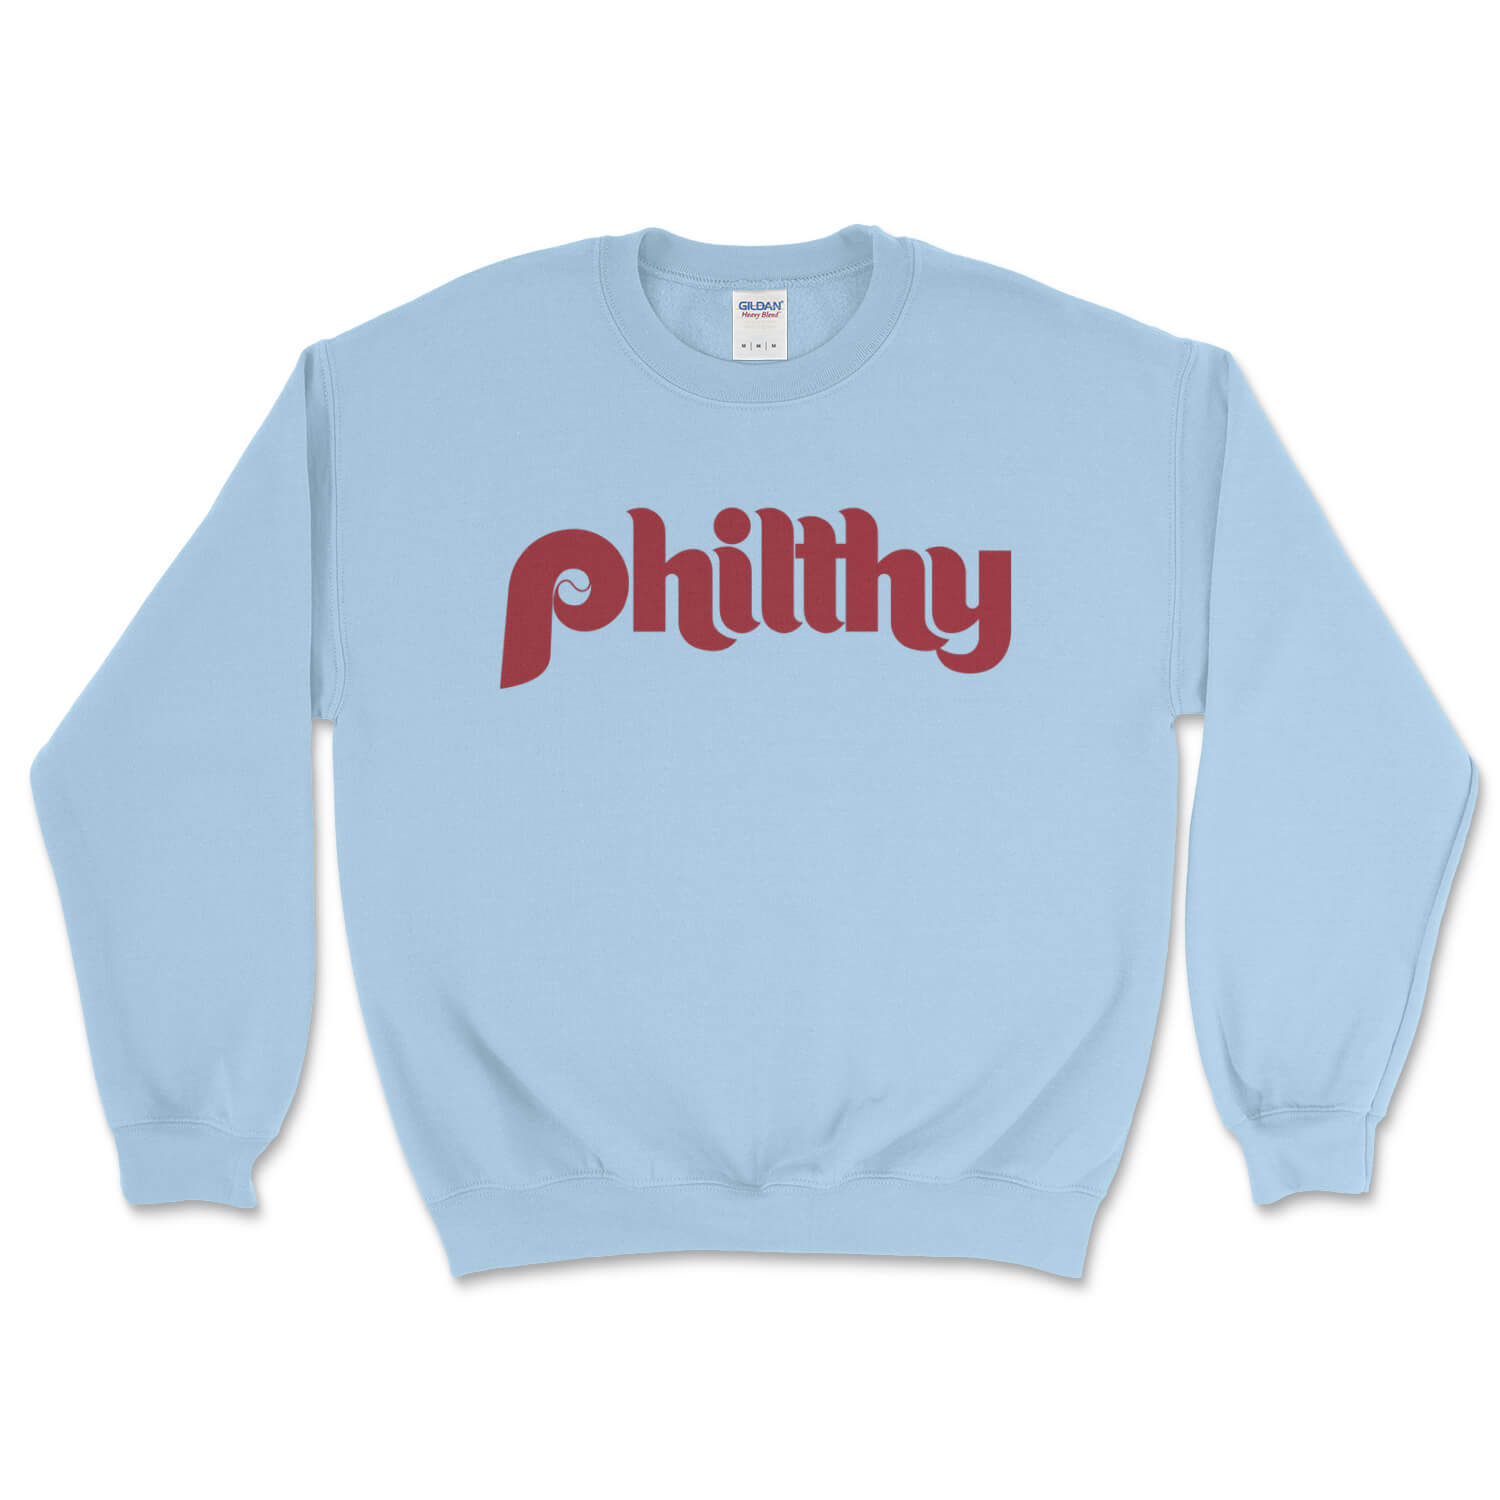 philadelphia phillies philthy vintage retro light blue sweatshirt from phillygoat